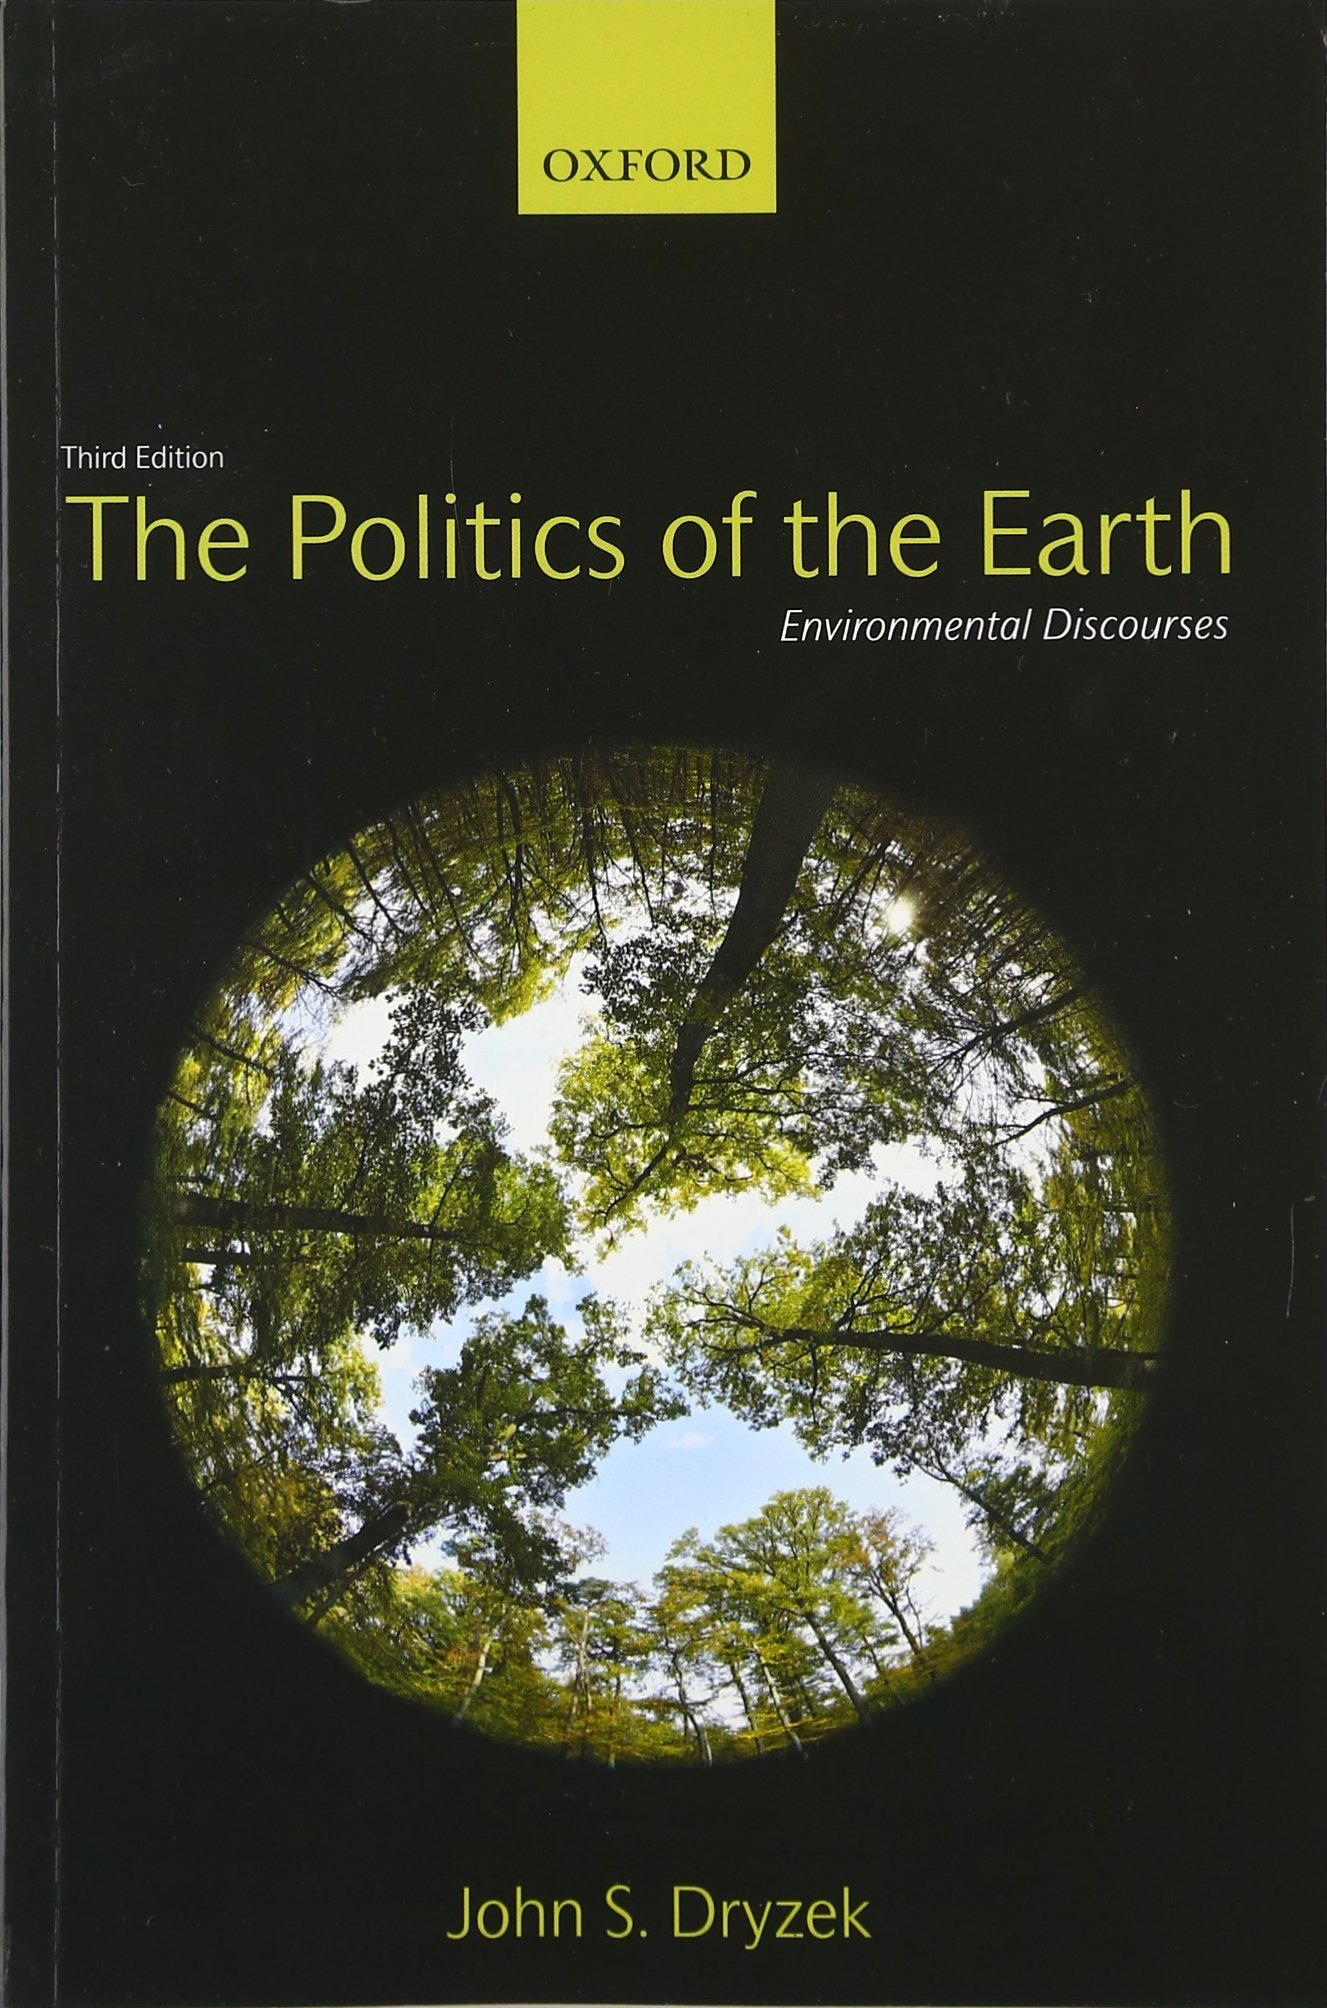 Image OfThe Politics Of The Earth: Environmental Discourses